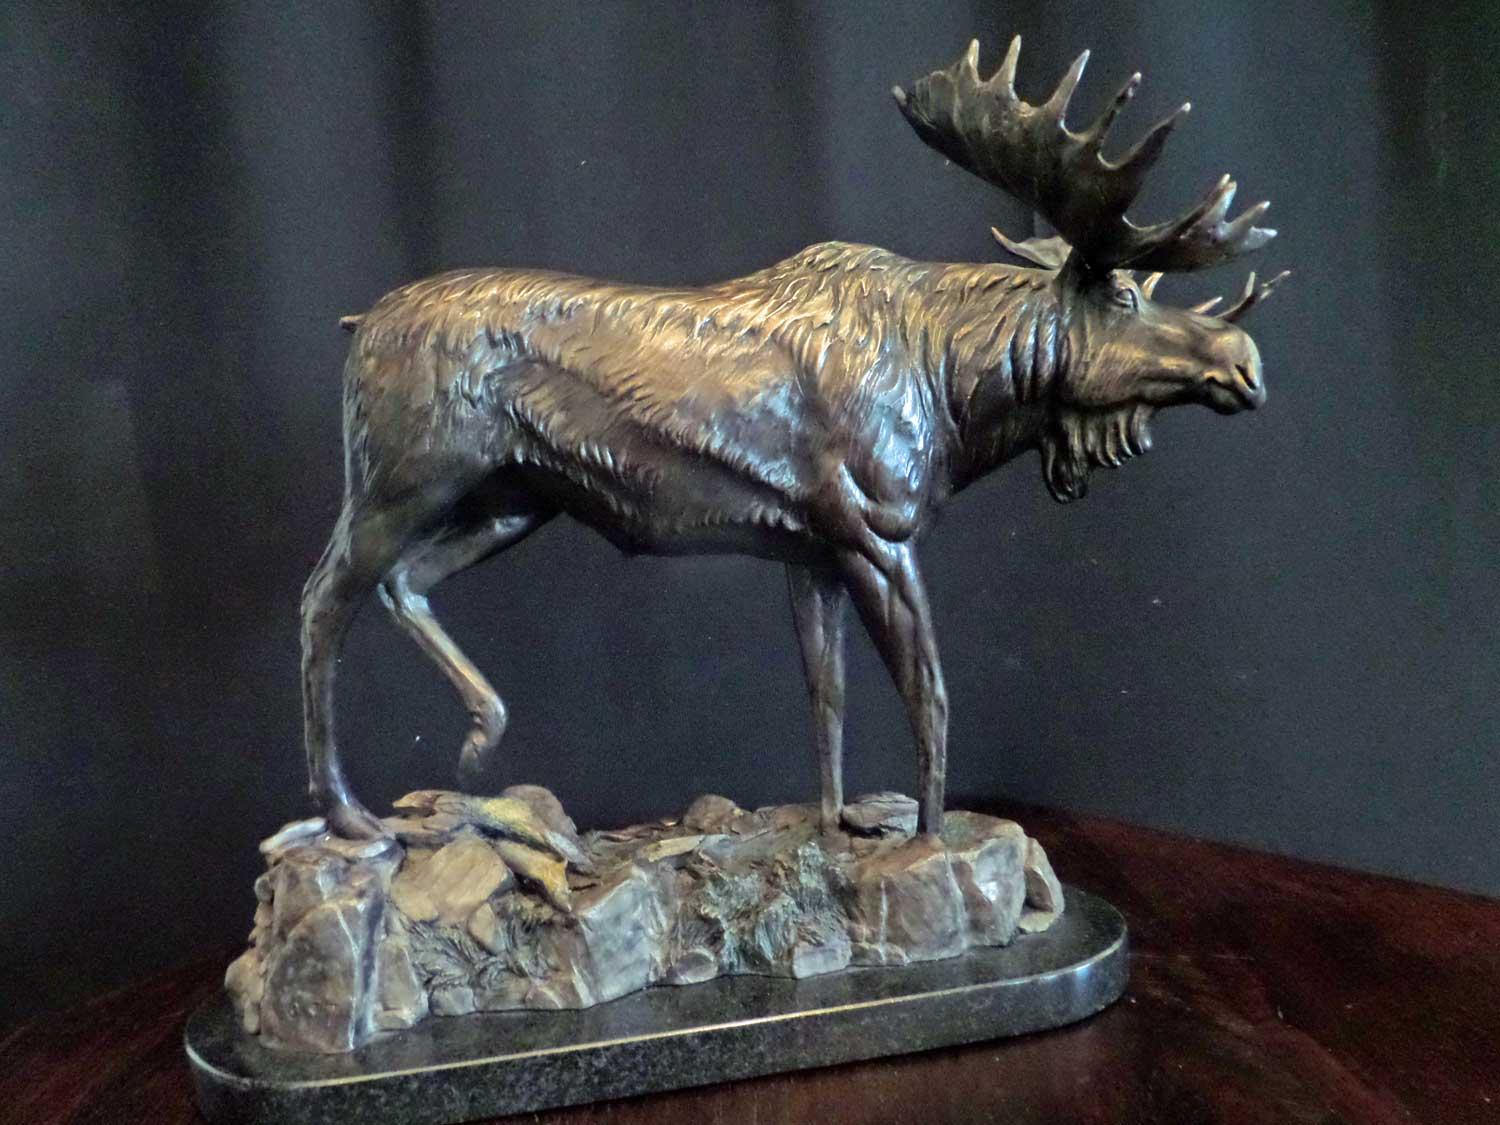 """Swamp Donkey""  - Moose<br>Size: 12 1/2 "" tall  x  15"" long   ""Swamp Donkey"" -  Biggame  Wildlife"